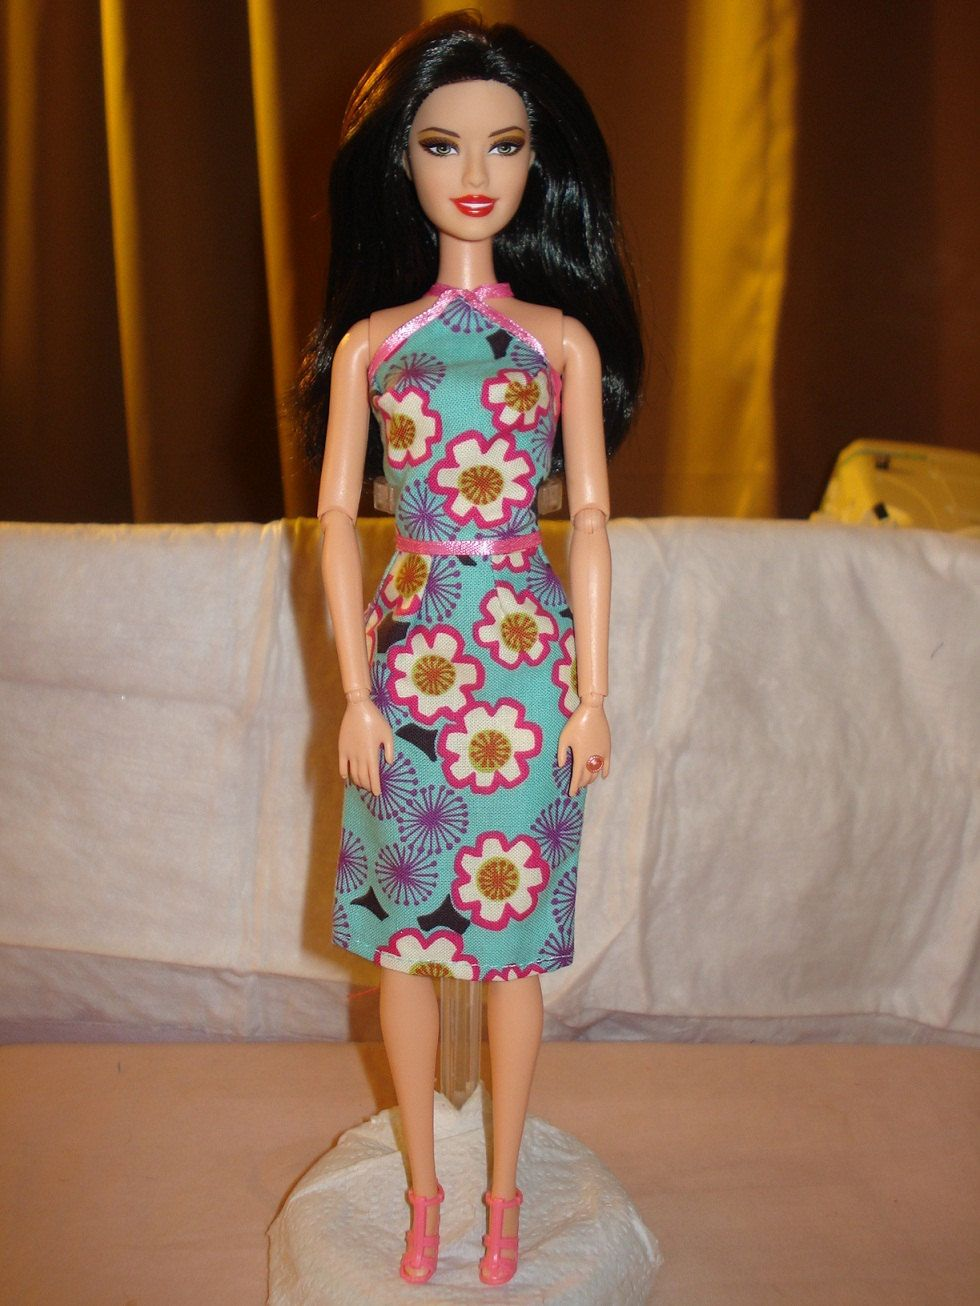 Agua and pink floral top and skirt set for Barbie Dolls - ed293. $7.00, via Etsy.